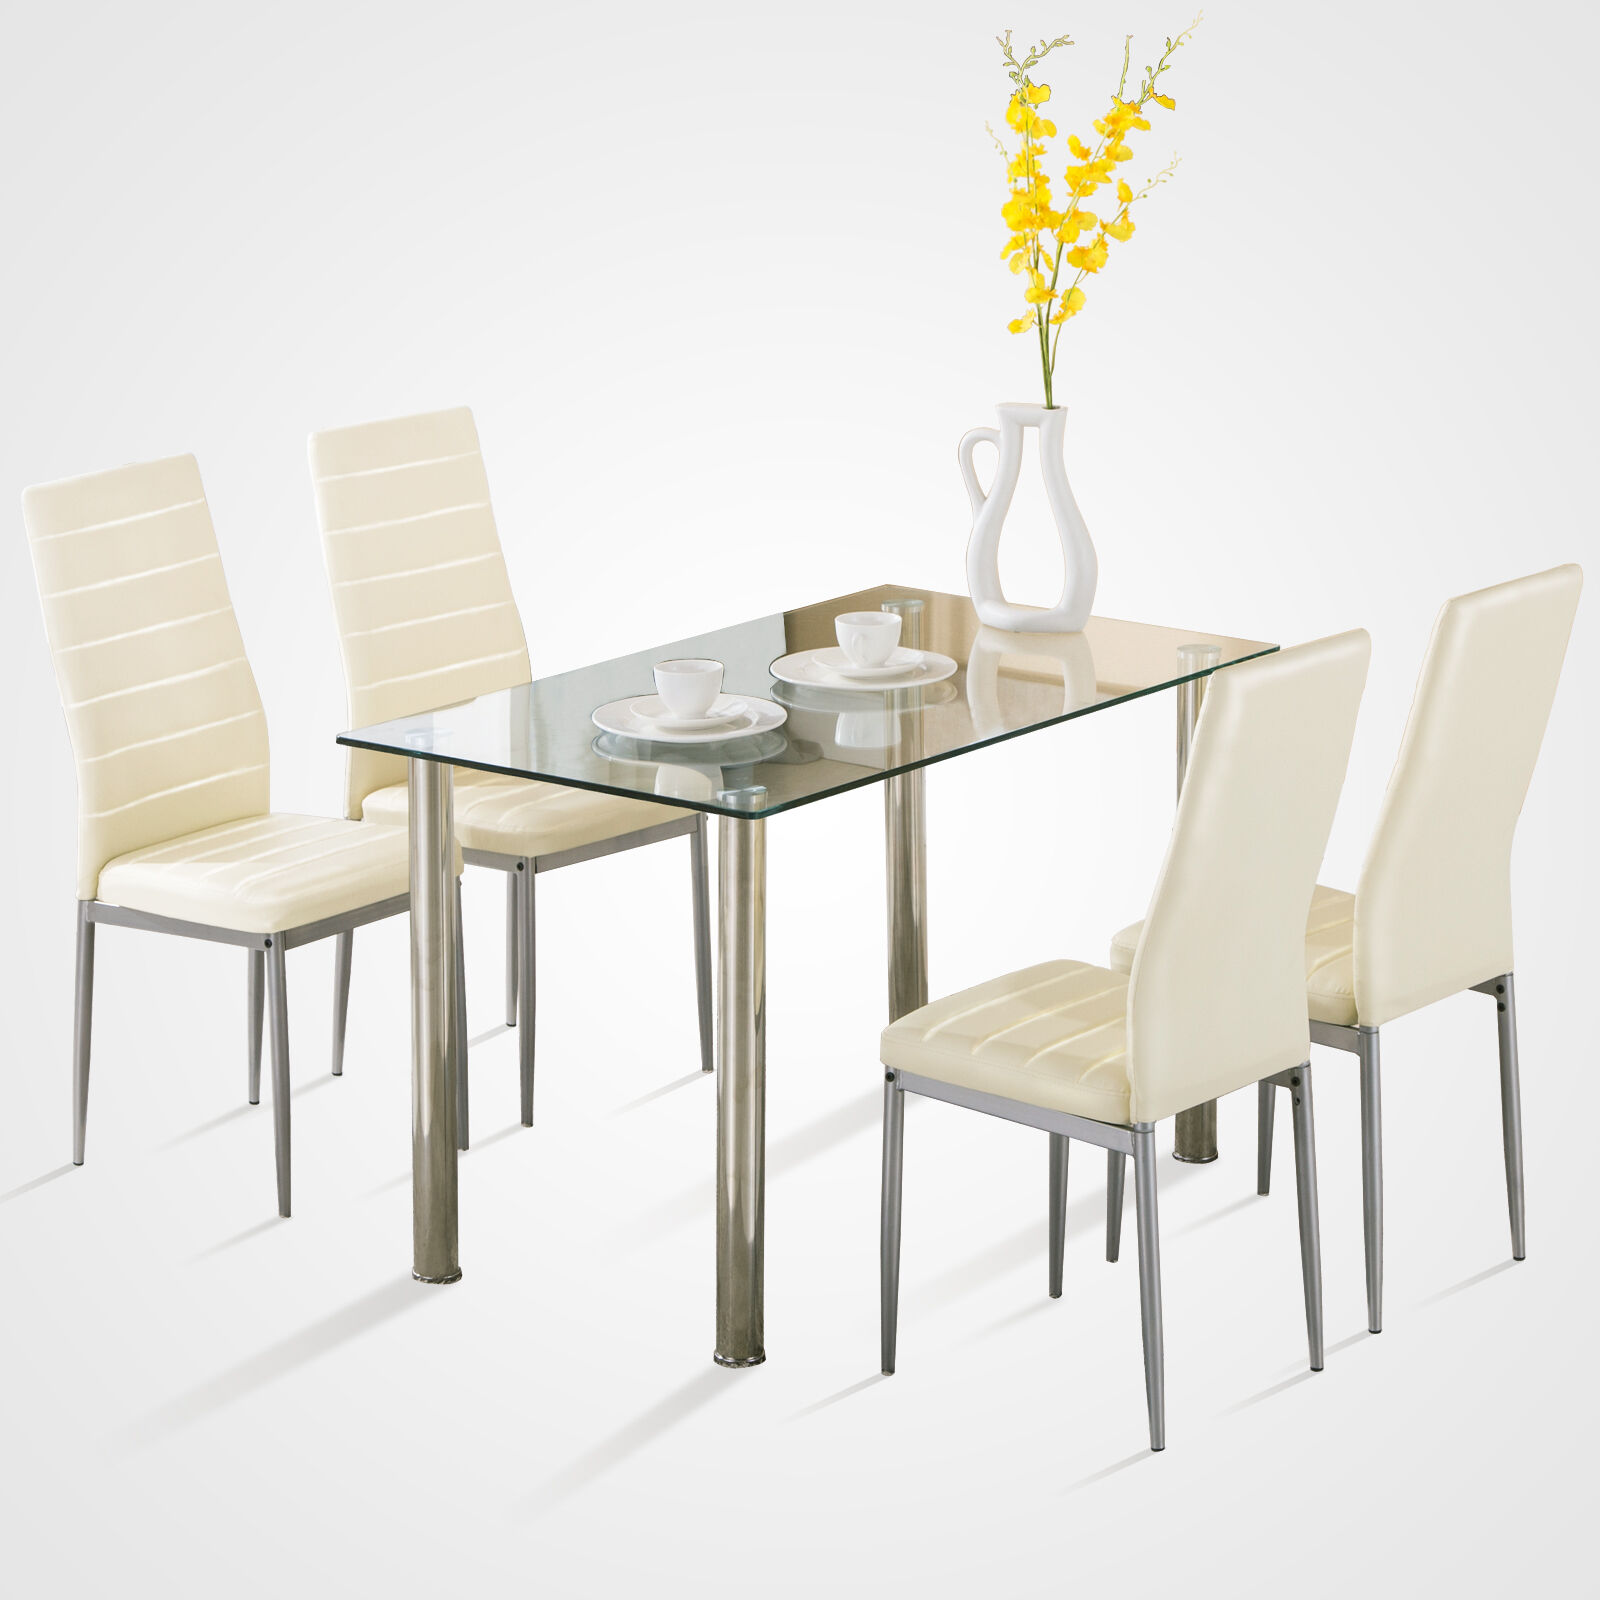 5 Piece Dining Table Gl Metal Set W 4 Chairs Breakfast Furniture Kitchen Room